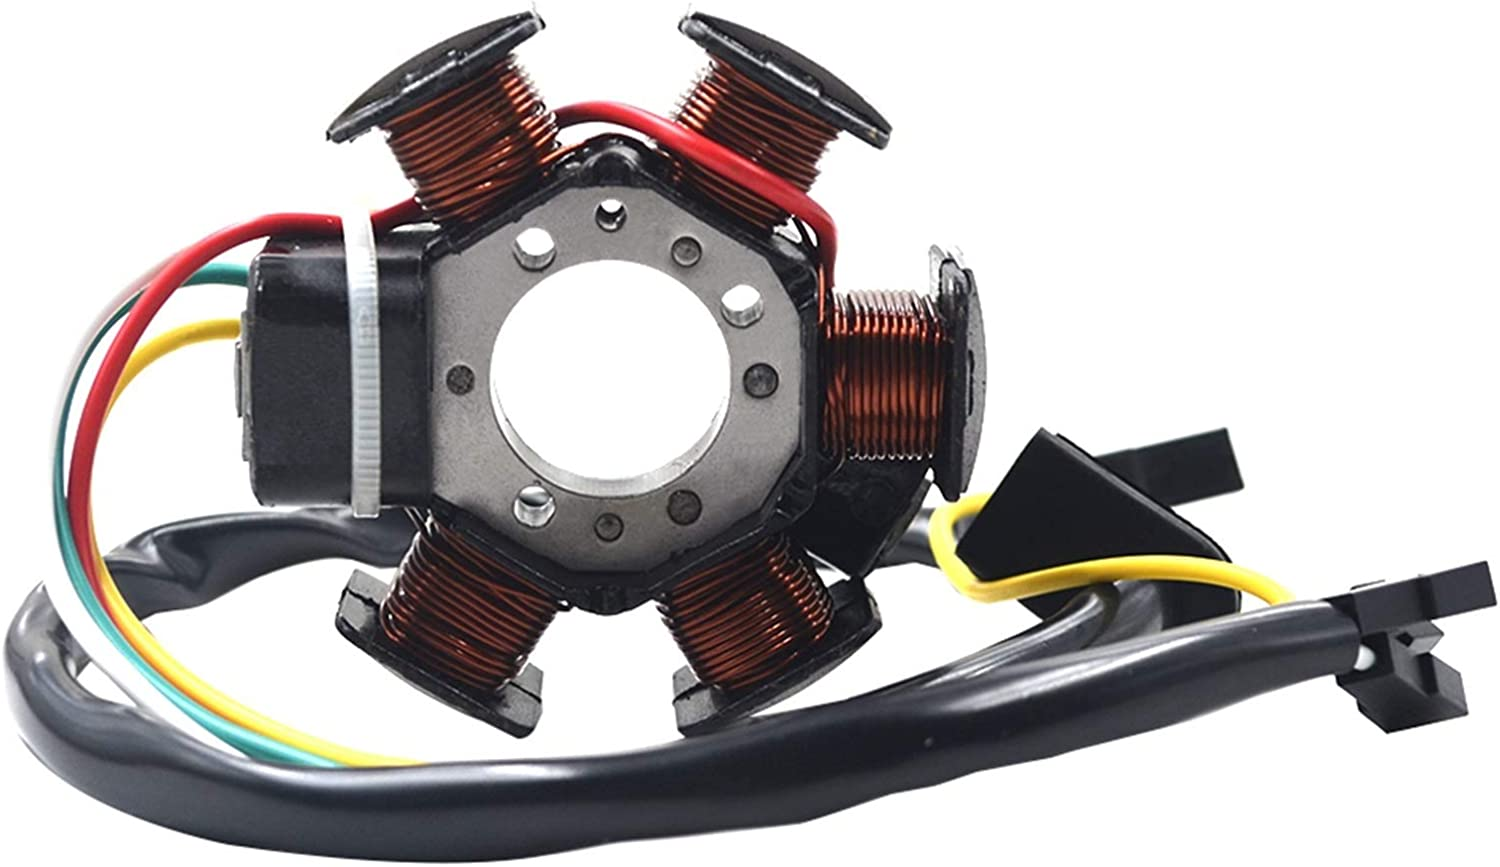 YIWMHE Cash special price Motorcycle Generator Stator Coil Kit Motorhi Assembly Sales for